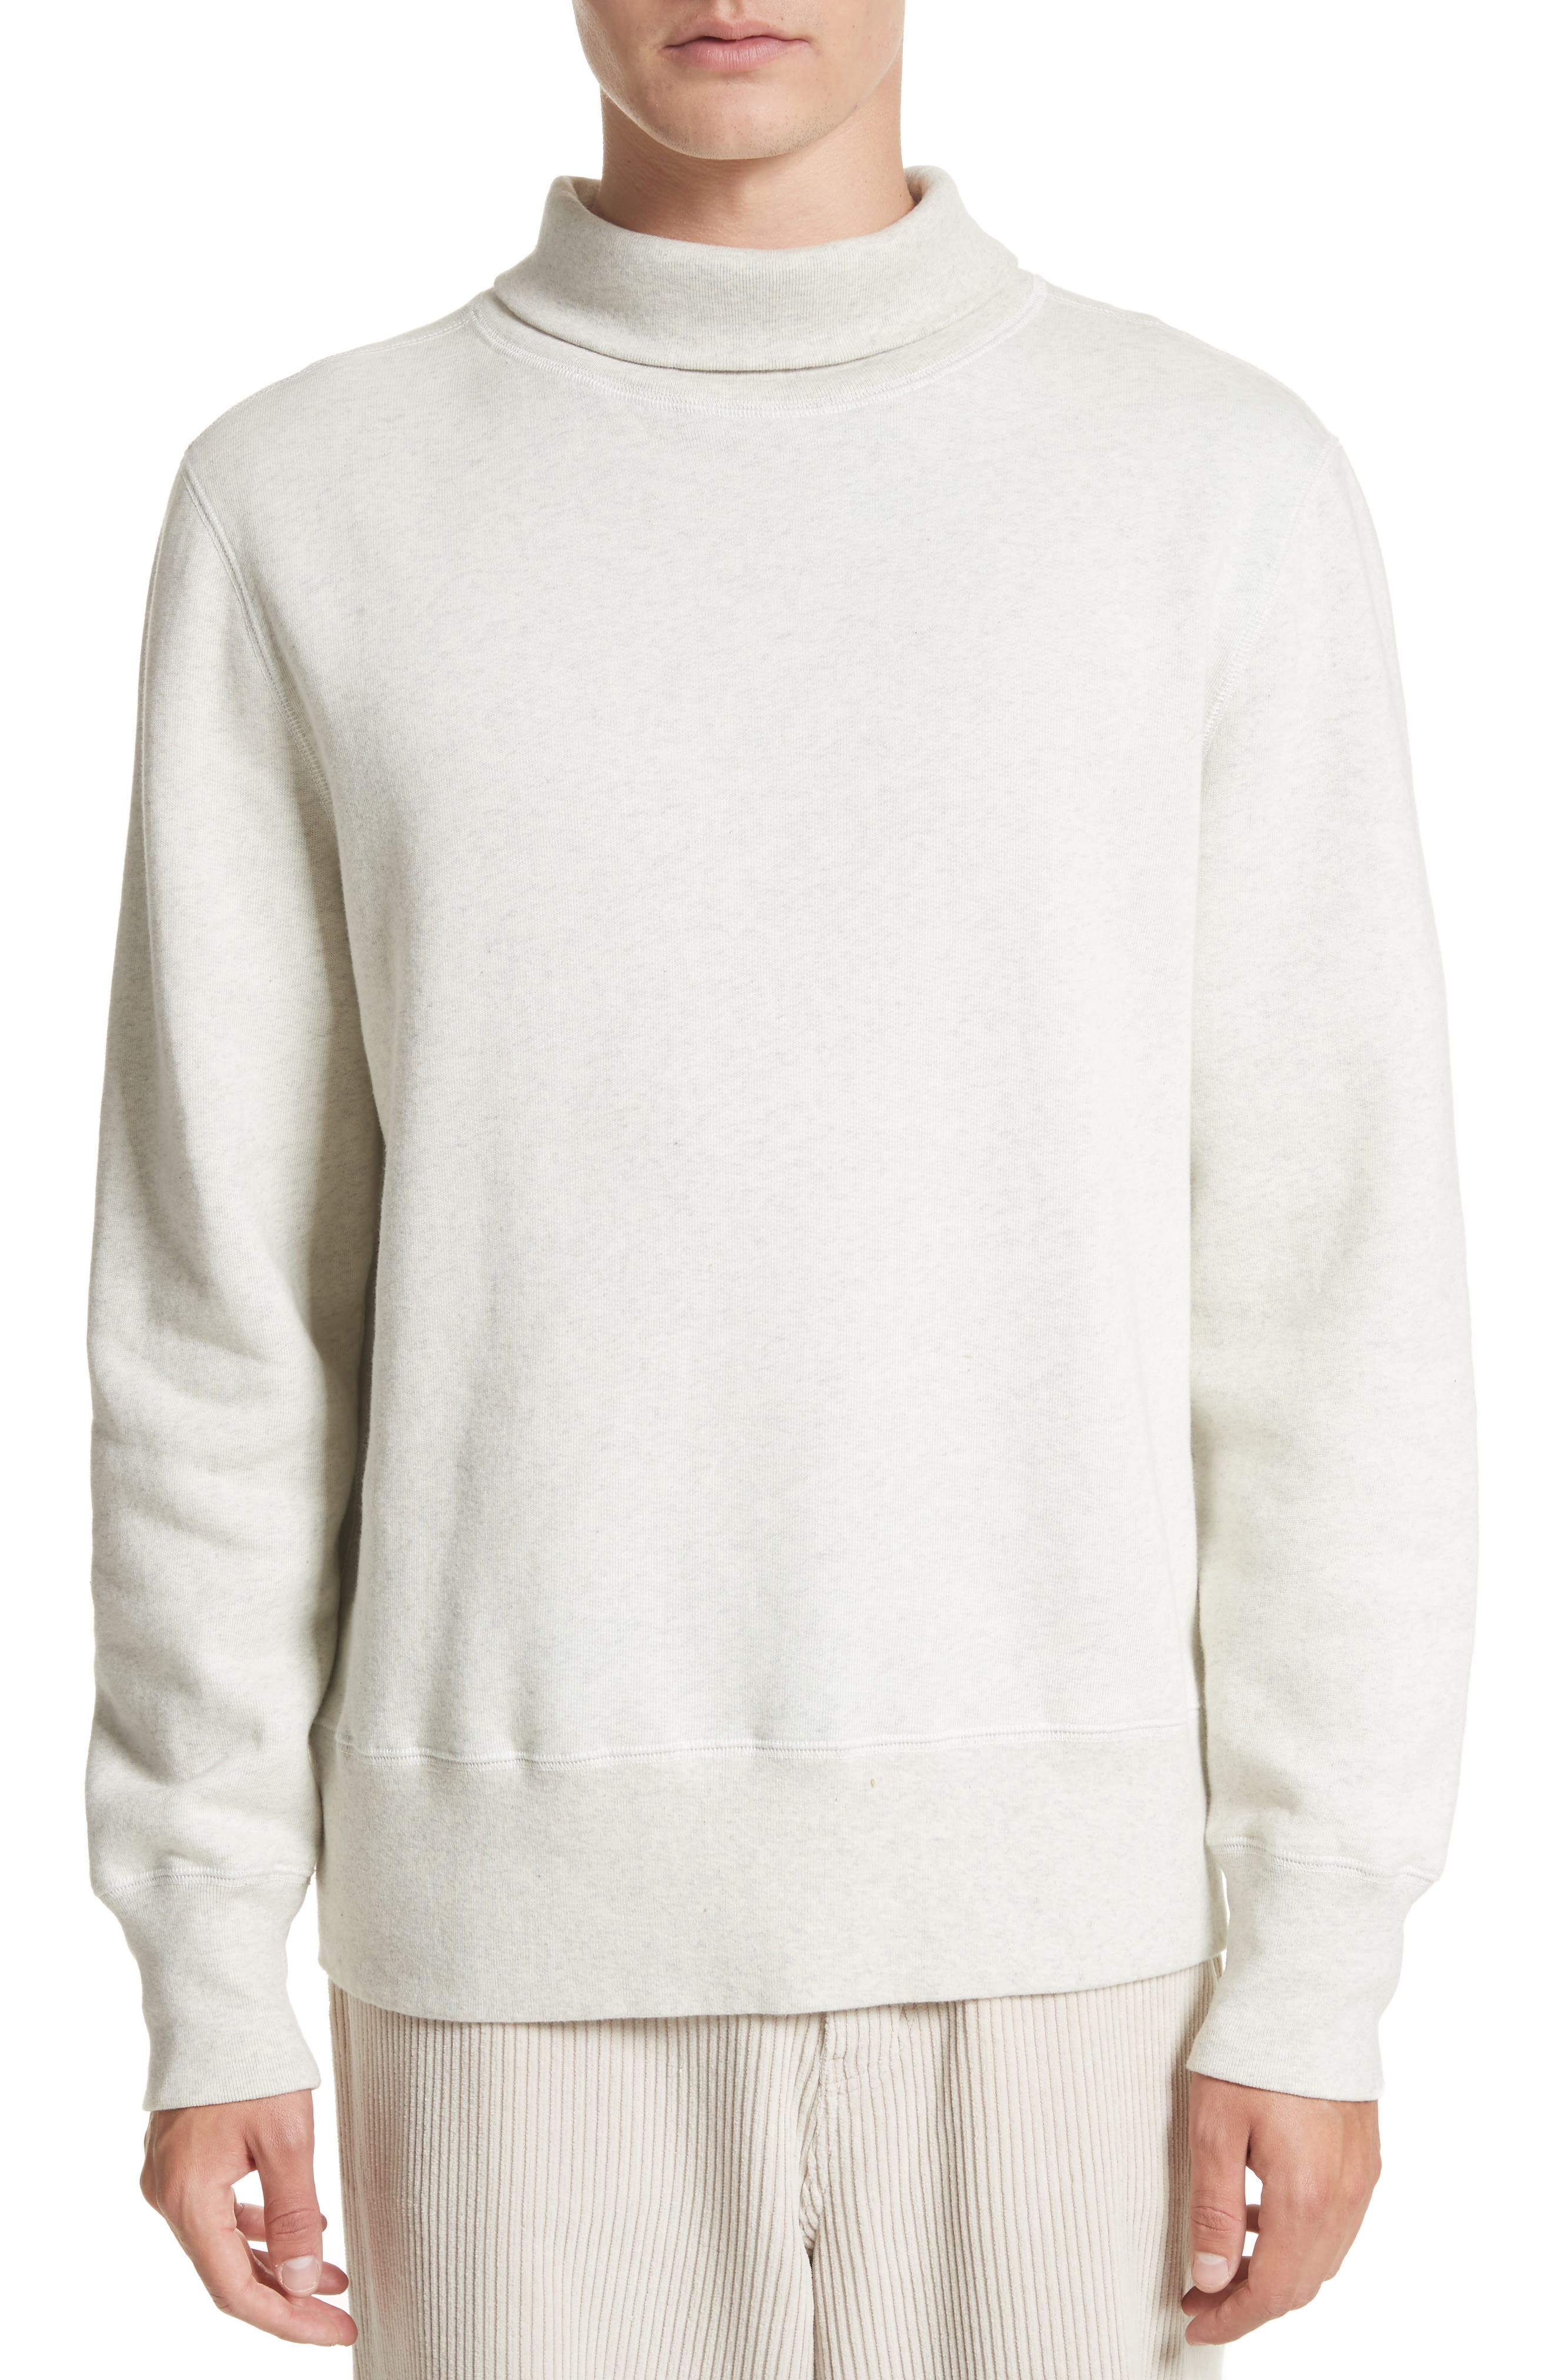 Main Image - OUR LEGACY Turtleneck Sweater